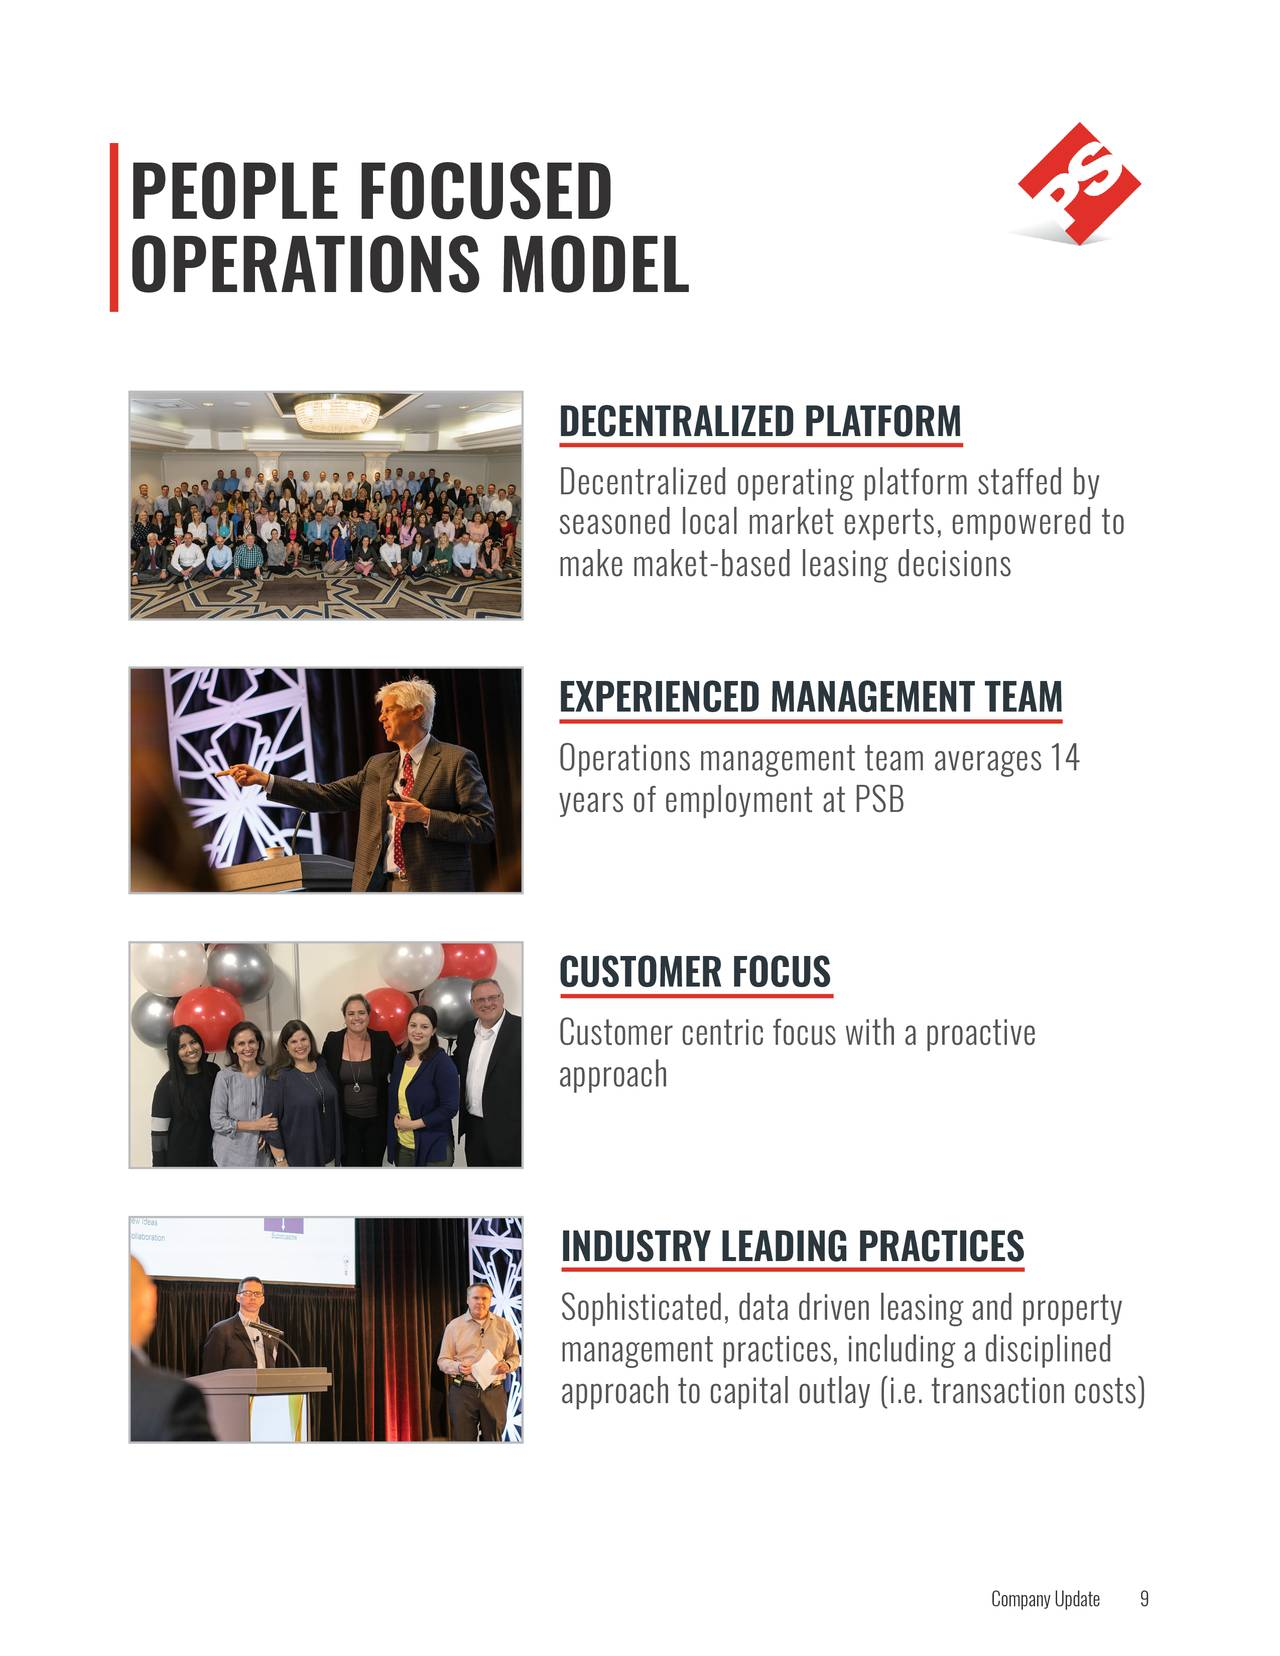 OPERATIONS MODEL DECENTRALIZED PLATFORM Decentralized operating platform staffed by seasoned local market experts, empowered to make maket-based leasing deci sions EXPERIENCED MANAGEMENT TEAM Operations management team averages 14 years of employment at PSB CUSTOMER FOCUS Customer centric focus with a proactive approach INDUSTRY LEADING PRACTICES Sophisticated, data driven leasing and property management practices, including a disciplined approach to capital outlay (i.e. transaction costs) Company Up9ate